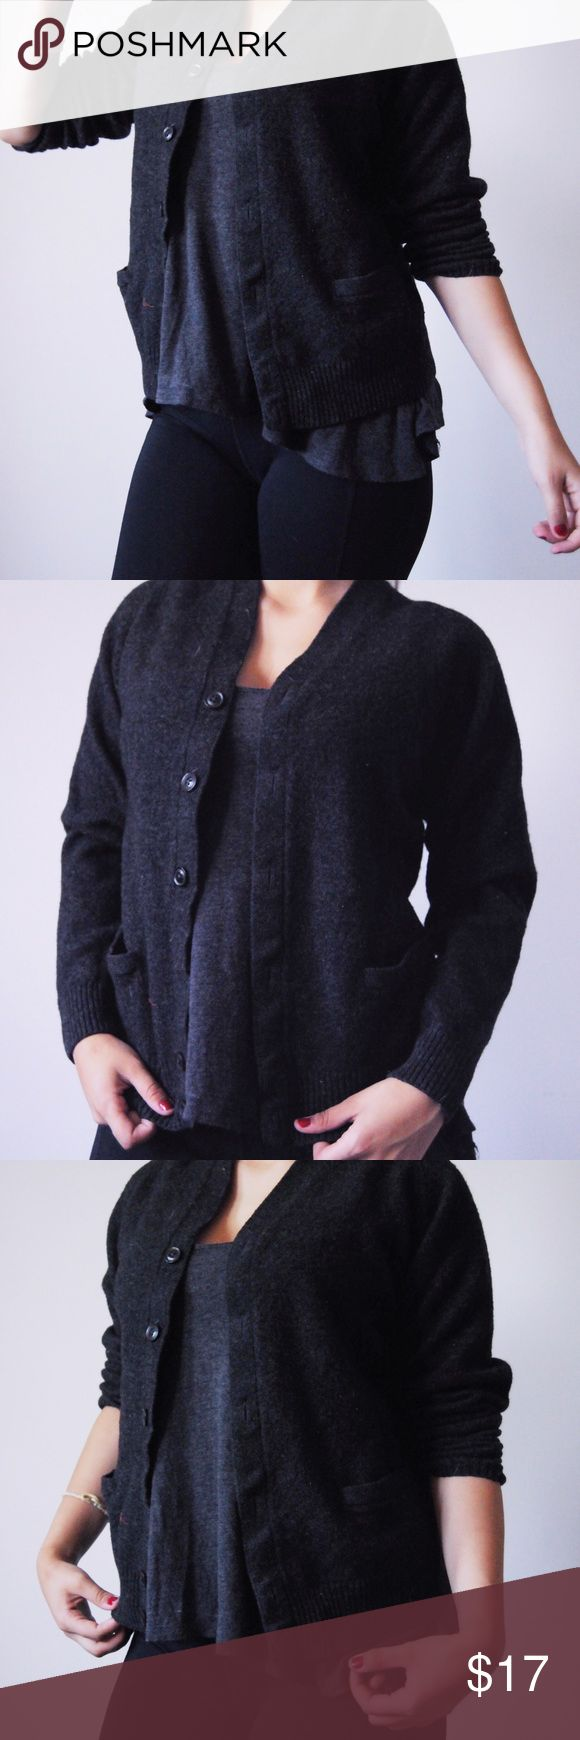 🌙Charcoal Grey Uniqlo Cardigan🌙 ✨This Uniqlo cardigan is made of wool and the dark color is flattering to anybody!!✨ Matches with almost everything :) Looks good paired with dresses and crop tops in the summer, as well as with jeans and boots when it's colder💕 🌸Size L but fits smalls and mediums very well🌸 🌼Buttons go all the way up past chest (as seen in photo)🌼 🌿Barely worn!🌿  🌺I can negotiate for reasonable offers :)🌺 UNIQLO Sweaters Cardigans